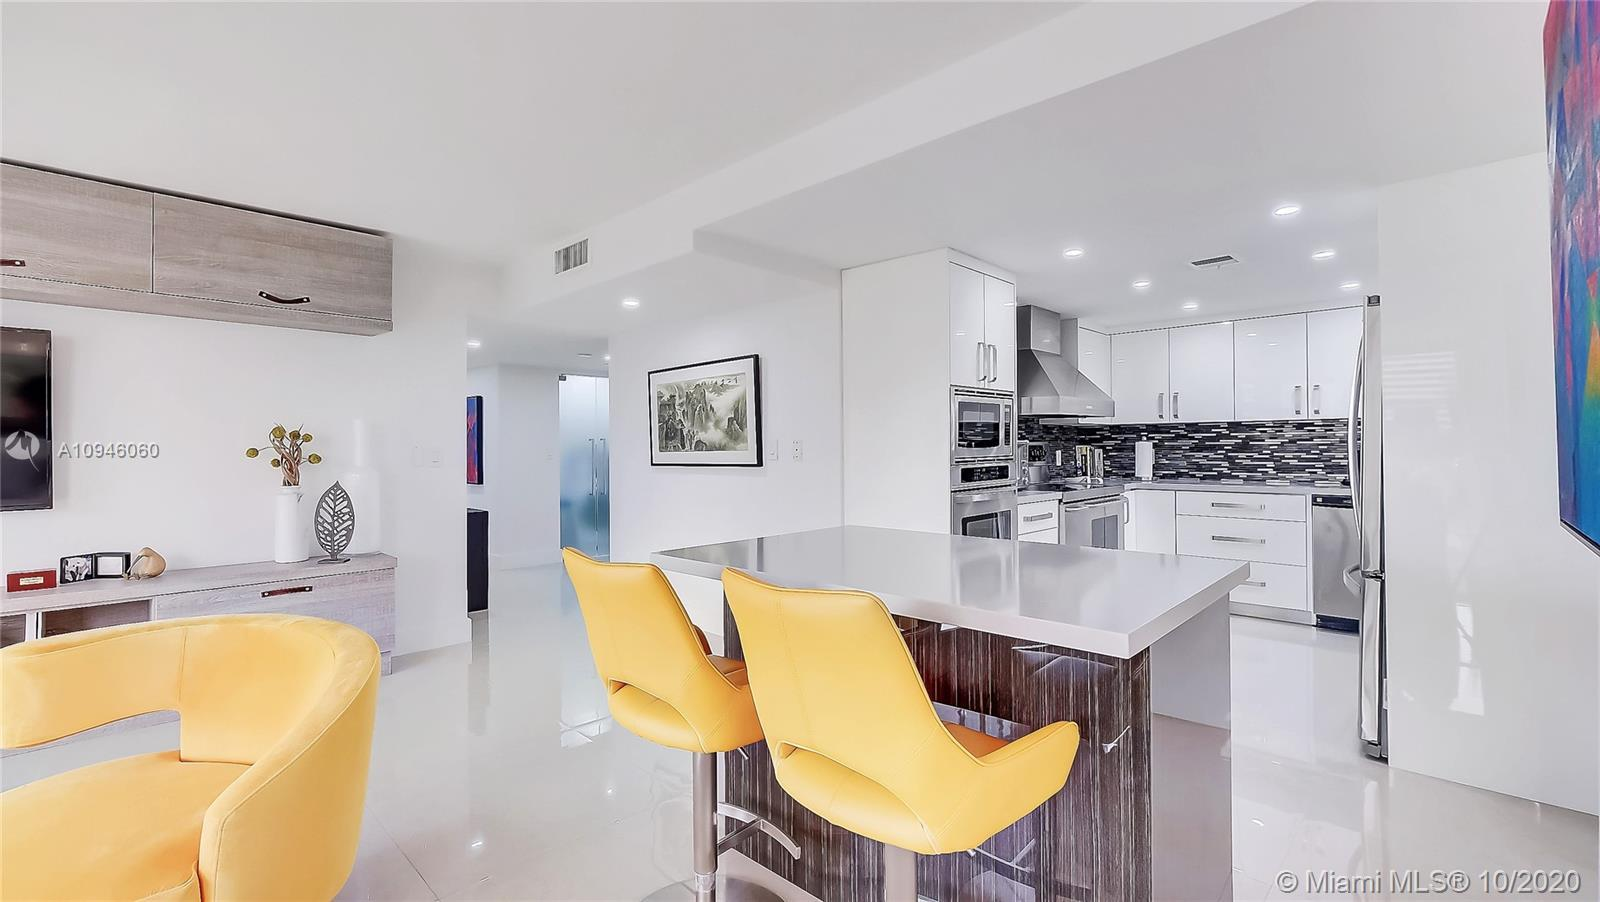 Bright and spacious, this beautifully remodeled unit has everything from a large kitchen, breakfast